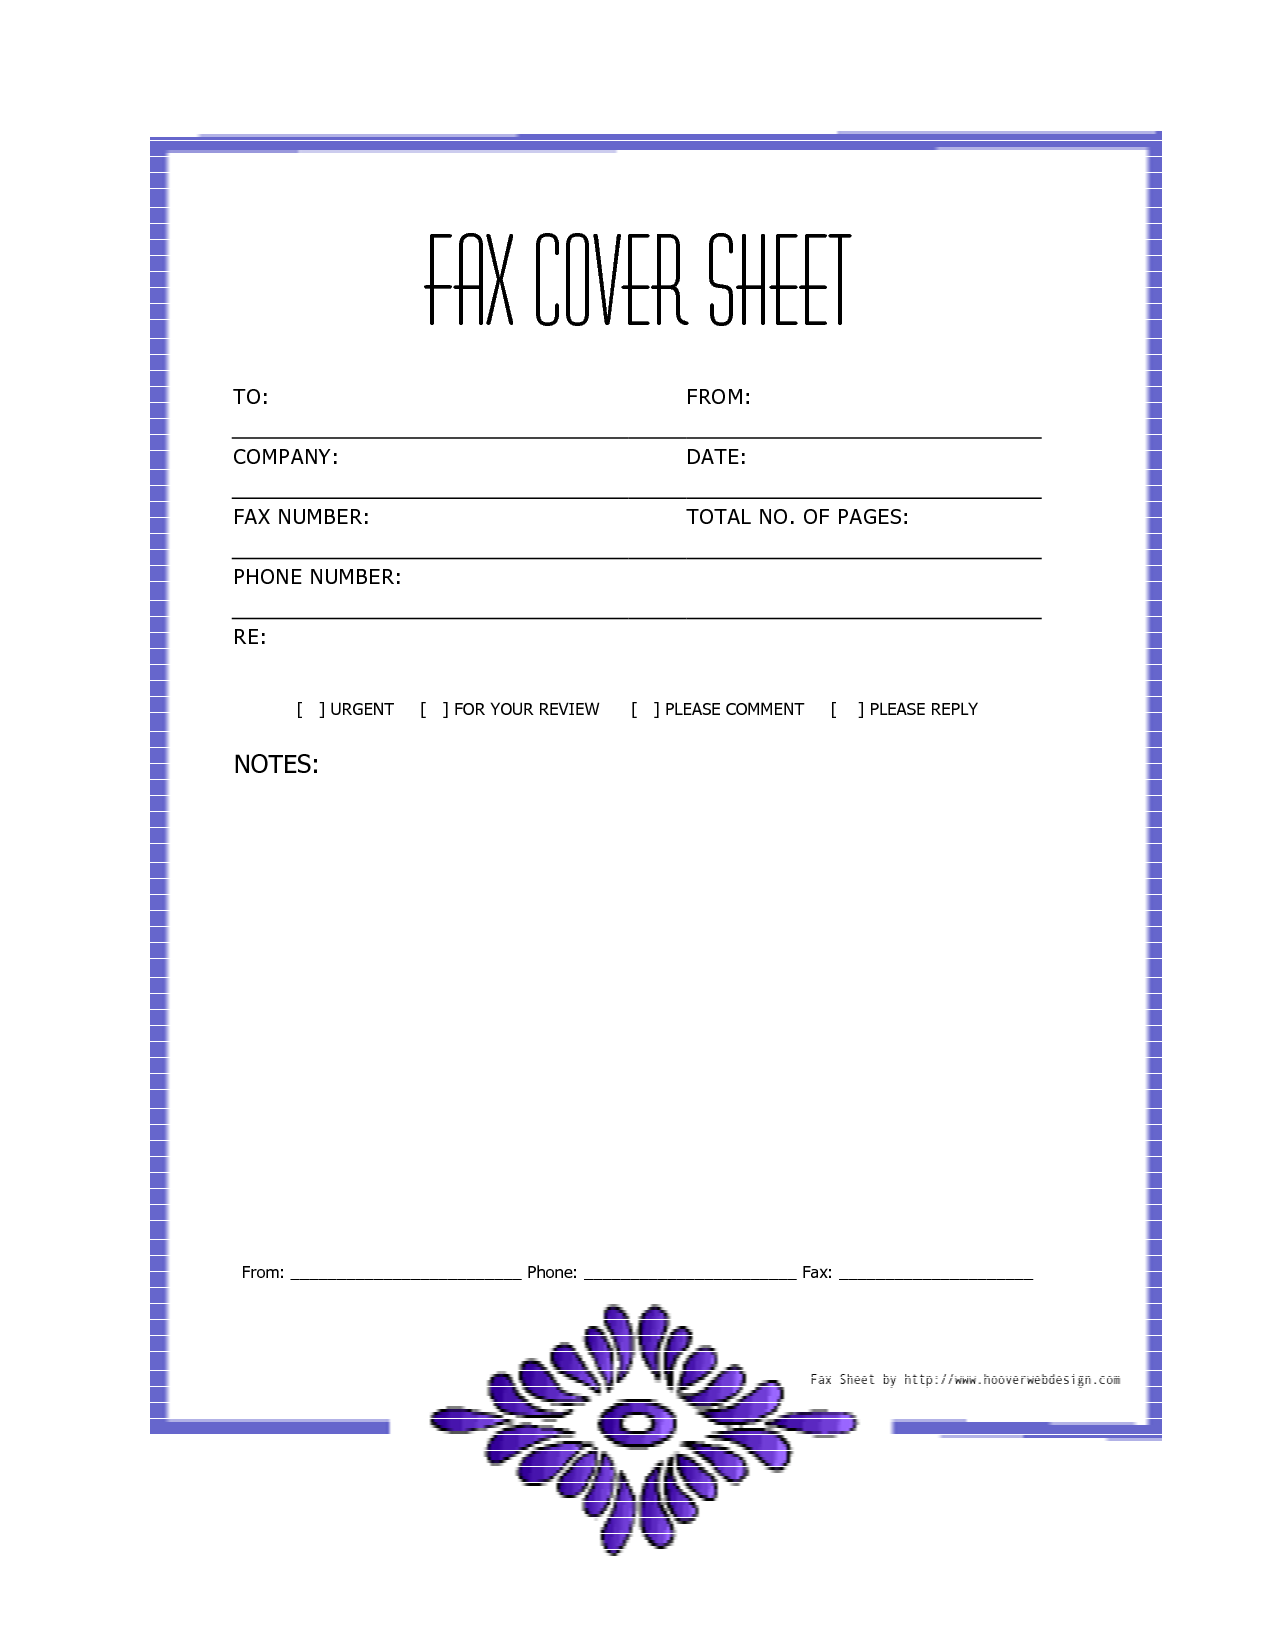 free downloads fax covers sheets free printable fax cover sheet template elegant download as - Free Printable Cover Letter Template